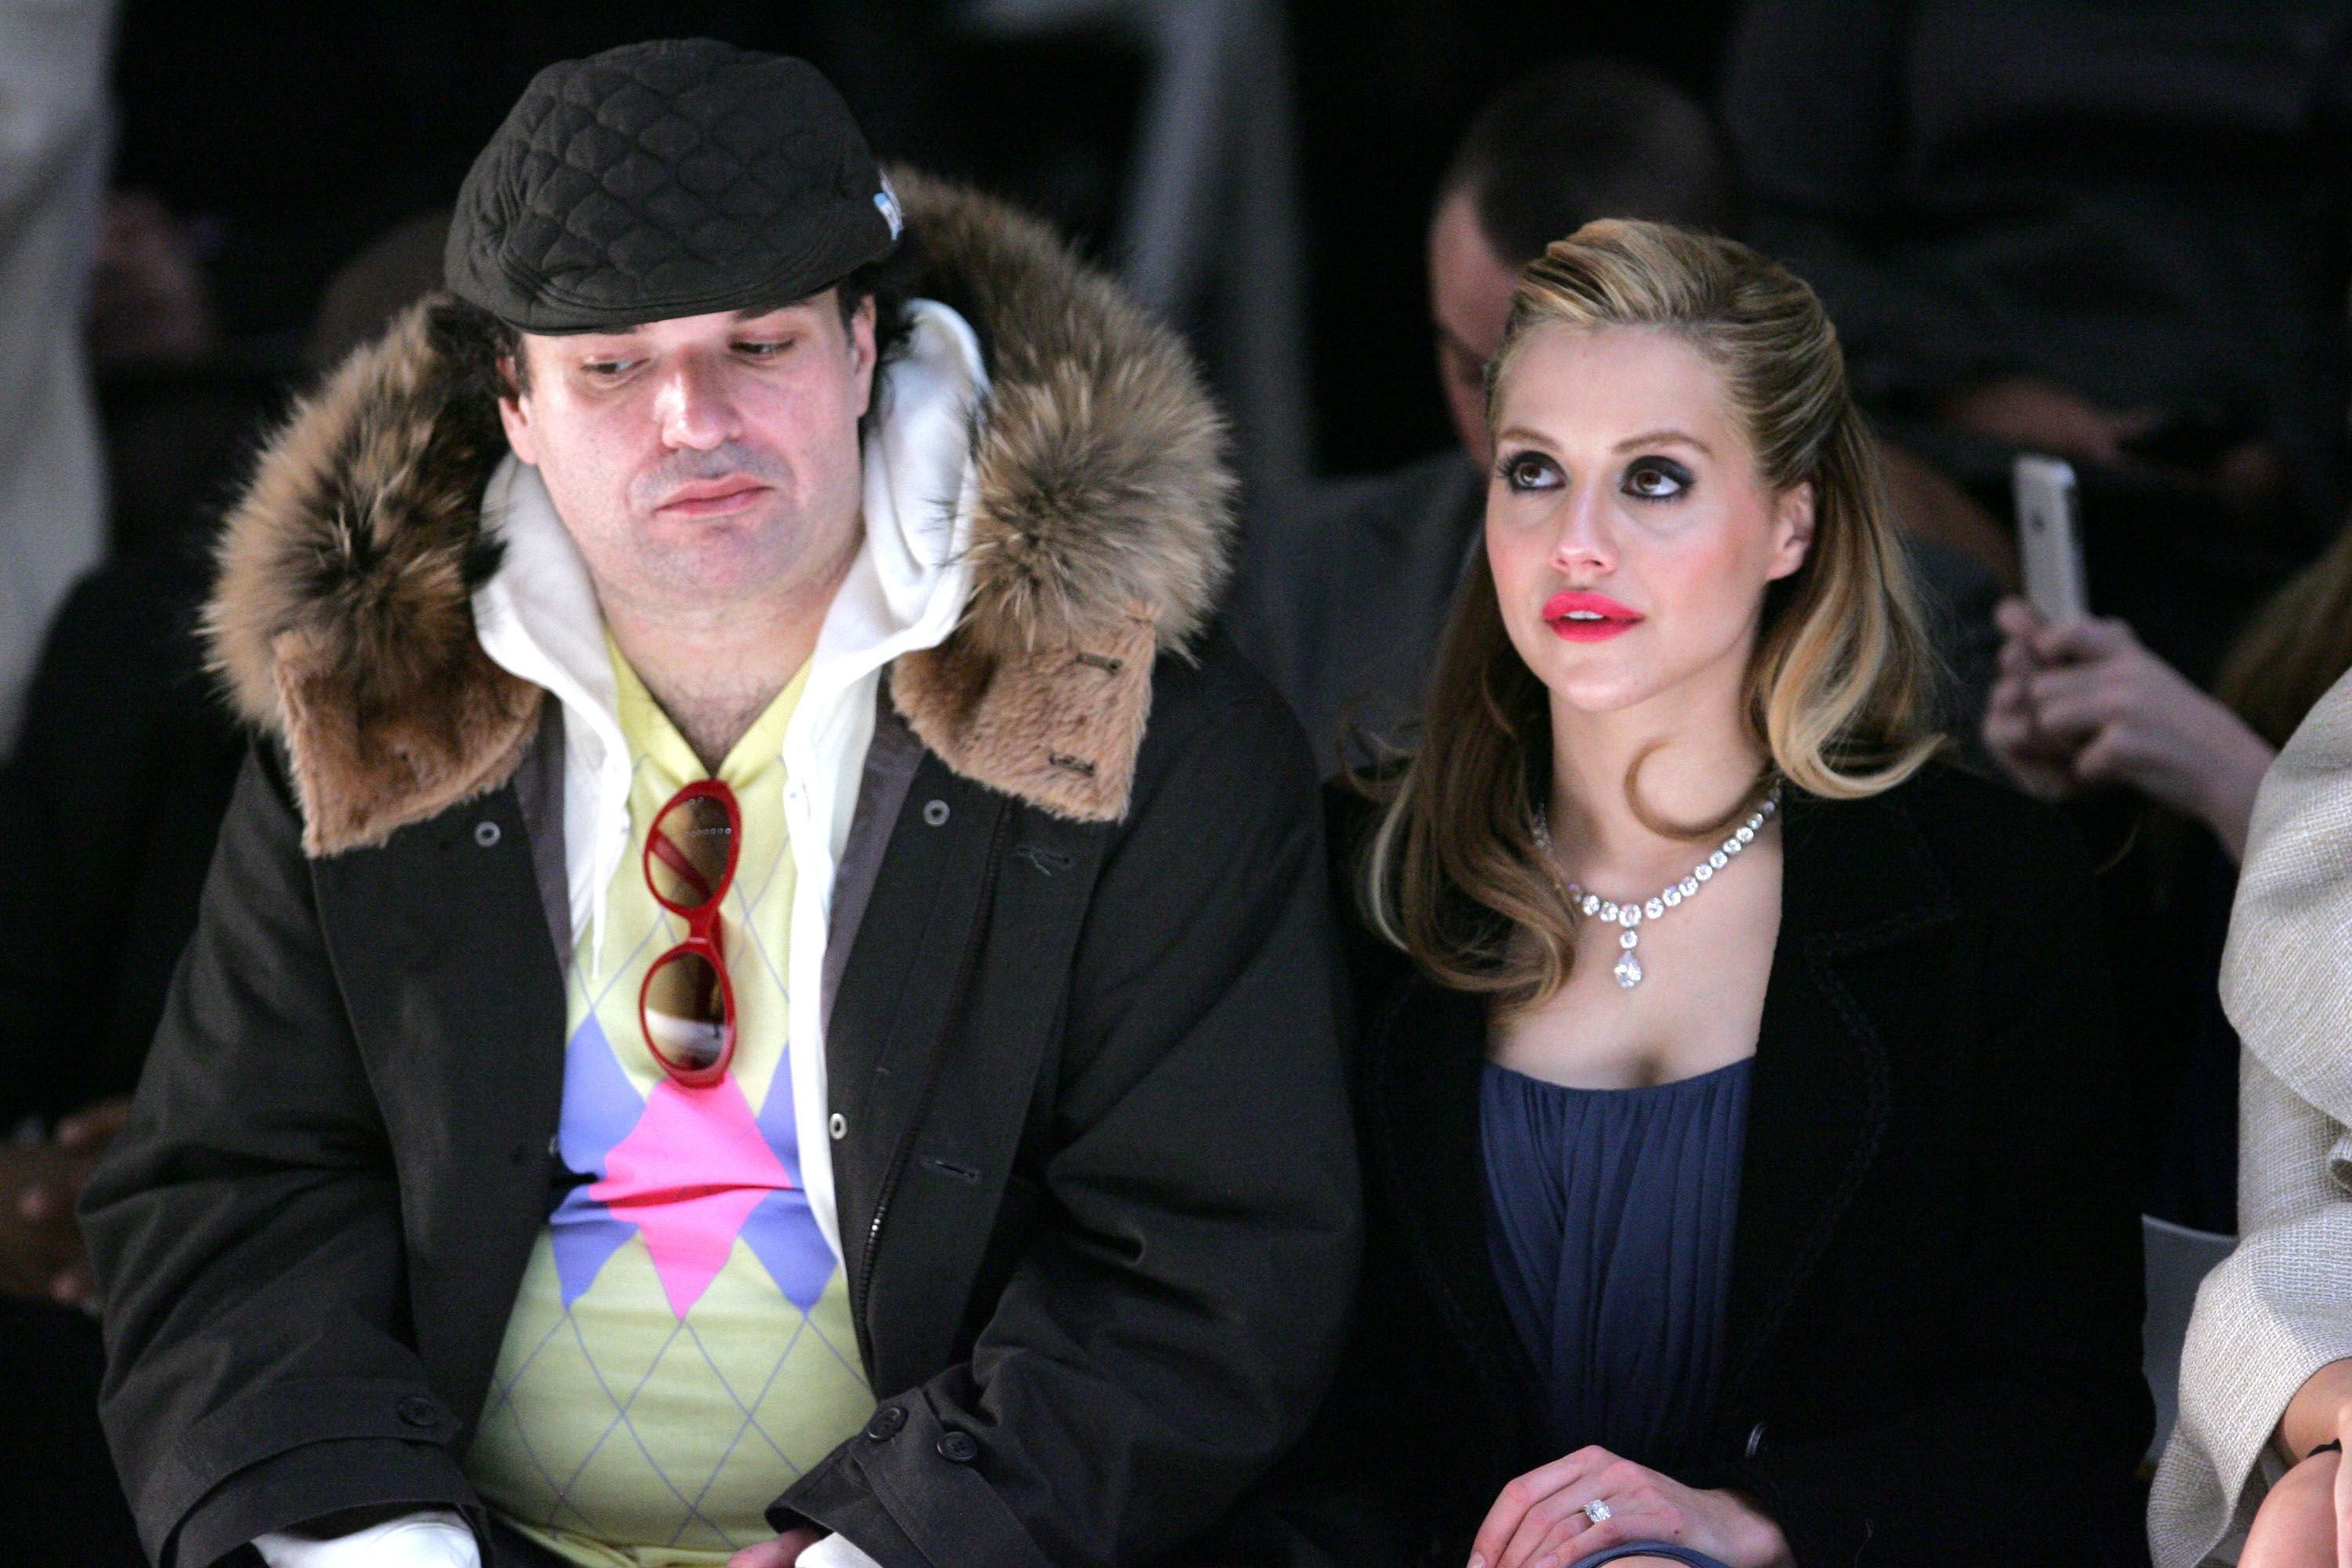 Actress Brittany Murphy and husband Simon Monjack at the Monique Lhuillier Fall 2008 fashion show during Mercedes-Benz Fashion Week Fall 2008 at The Promenade at Bryant Park in New York City   Photo: Bryan Bedder/Getty Images for IMG